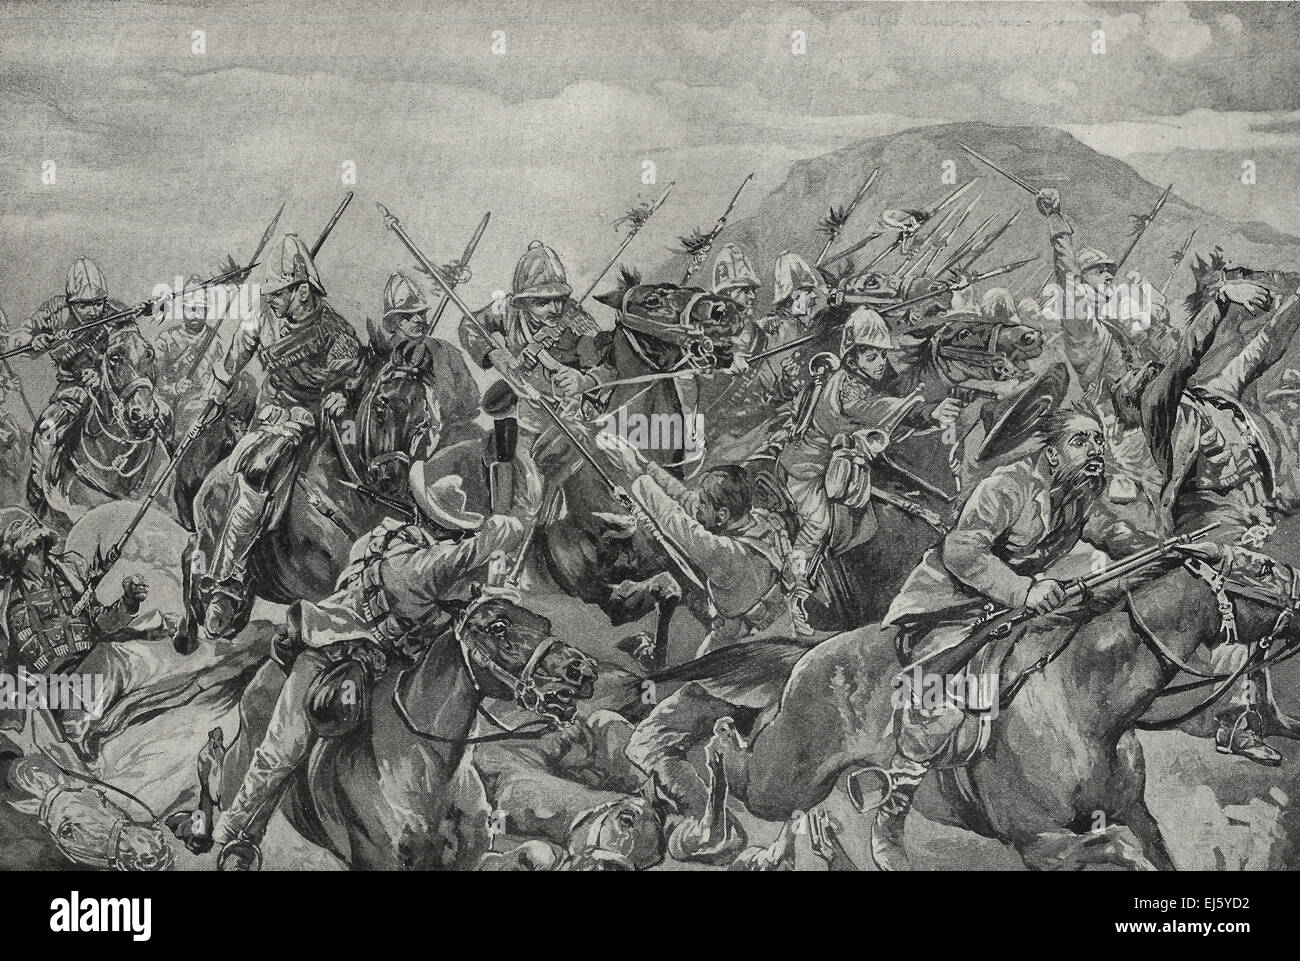 The Charge of the Lancers - The Battle of Elandslaagte ended in the gloom of settling night with the Charge of the - Stock Image